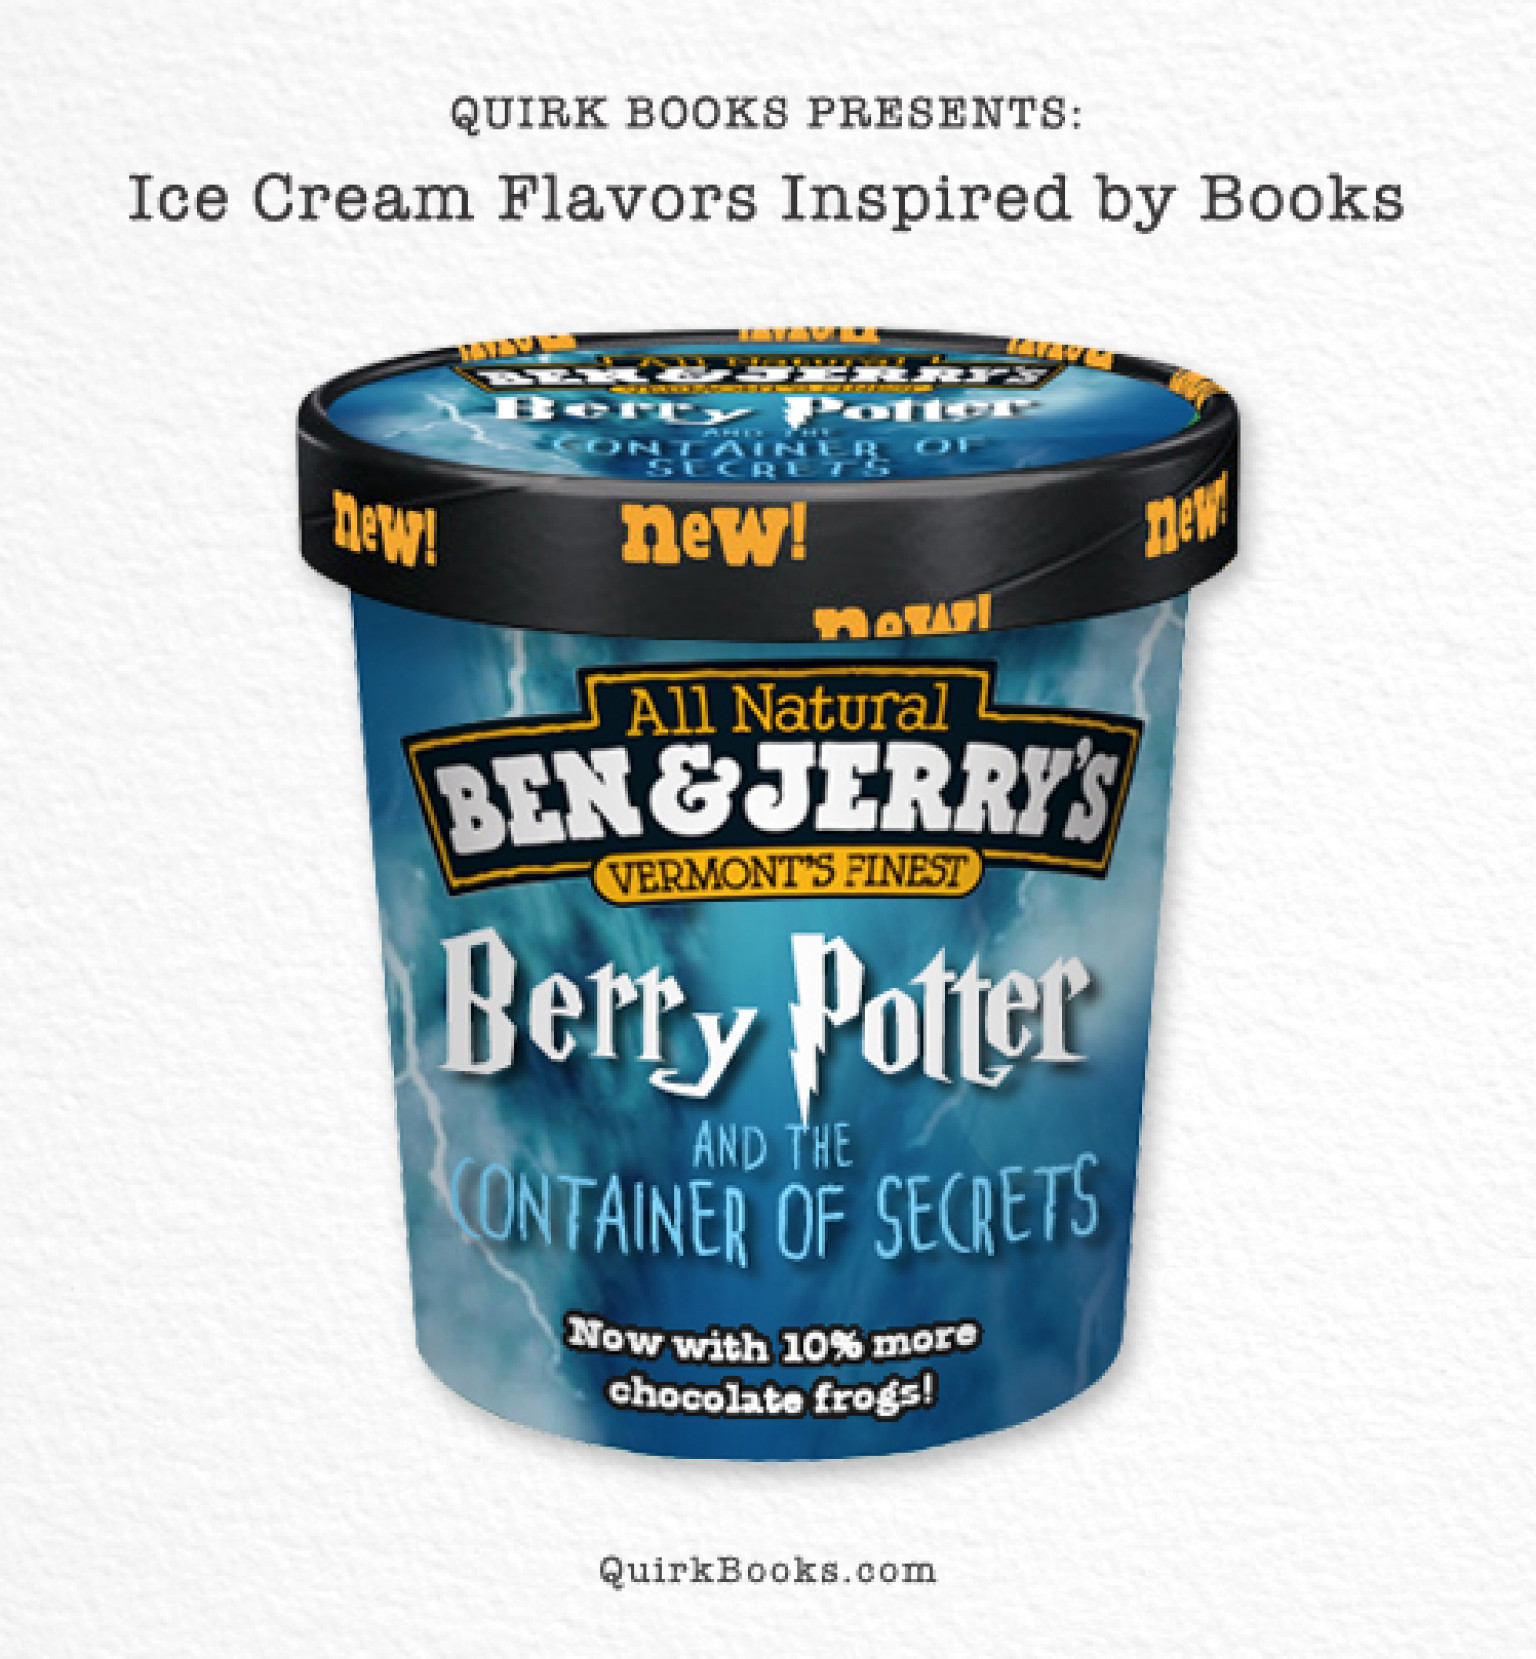 Its milk guys i promise ally lyons - Quirk Books Has Put Together A Pretend Collection Of Ben Jerry S Ice Cream Flavors Based On Popular Books And It S Hilarious